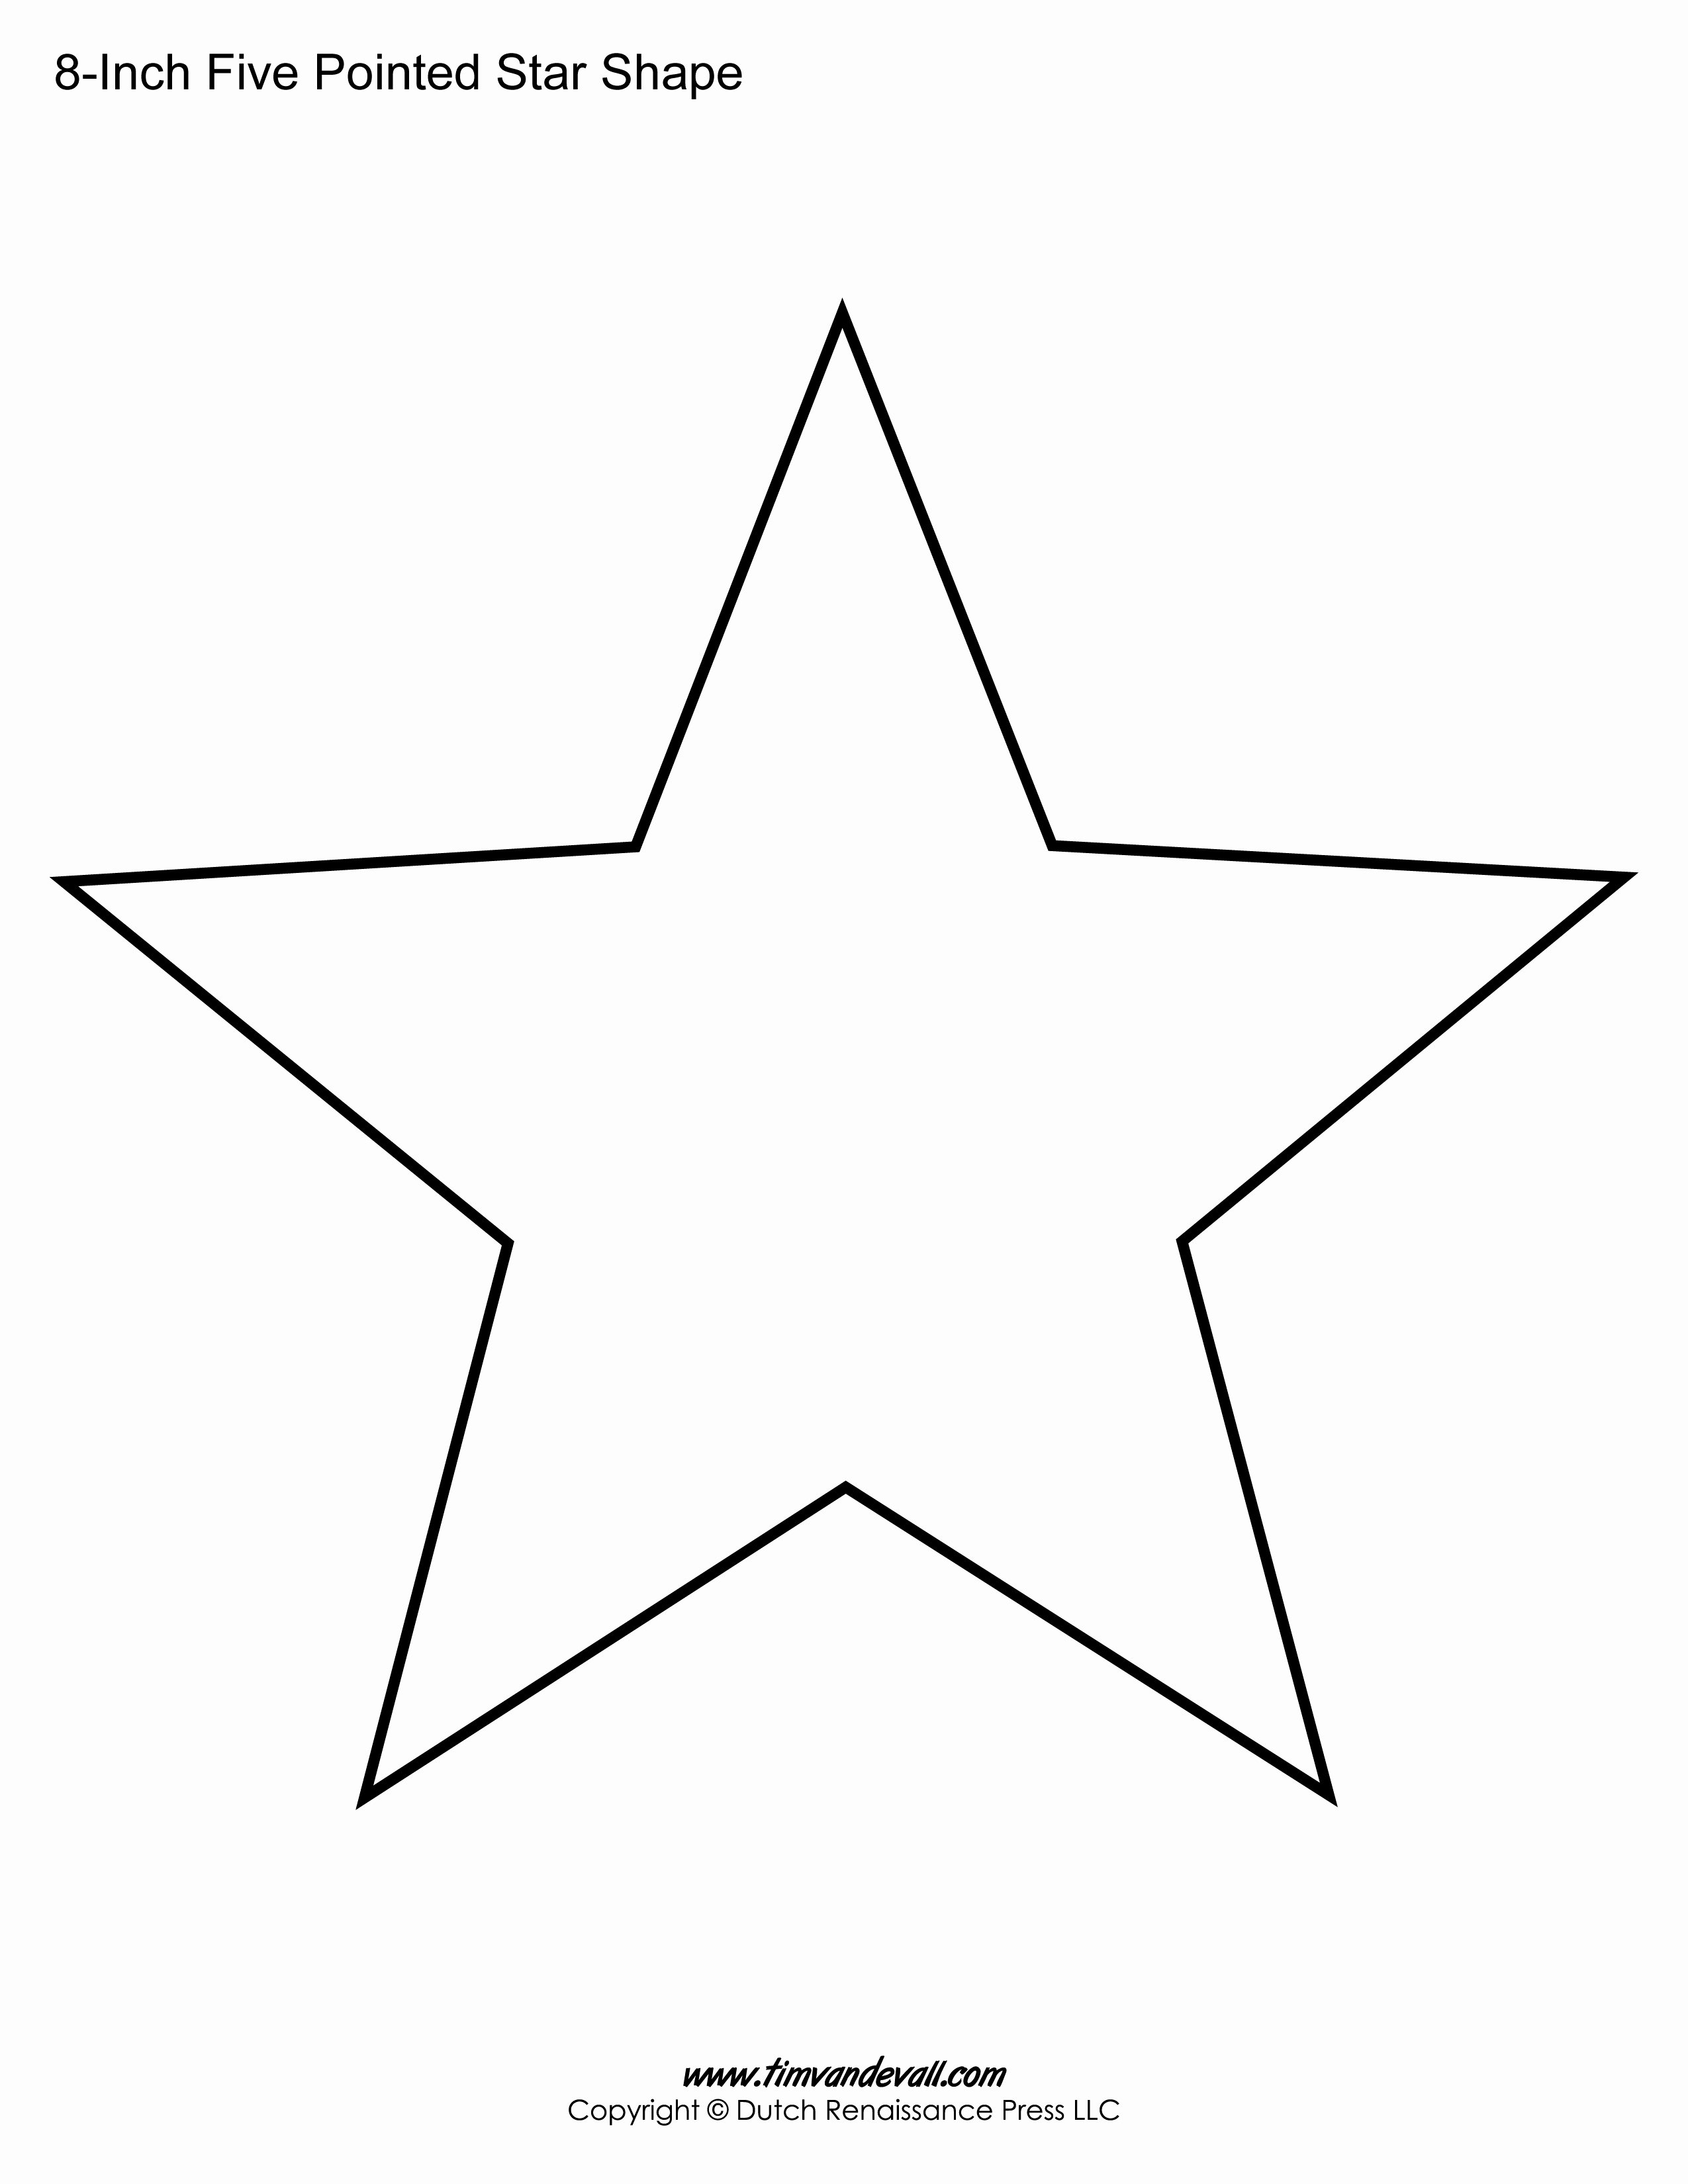 1 Inch Star Template Awesome Printable Five Pointed Star Templates Blank Shape Pdfs